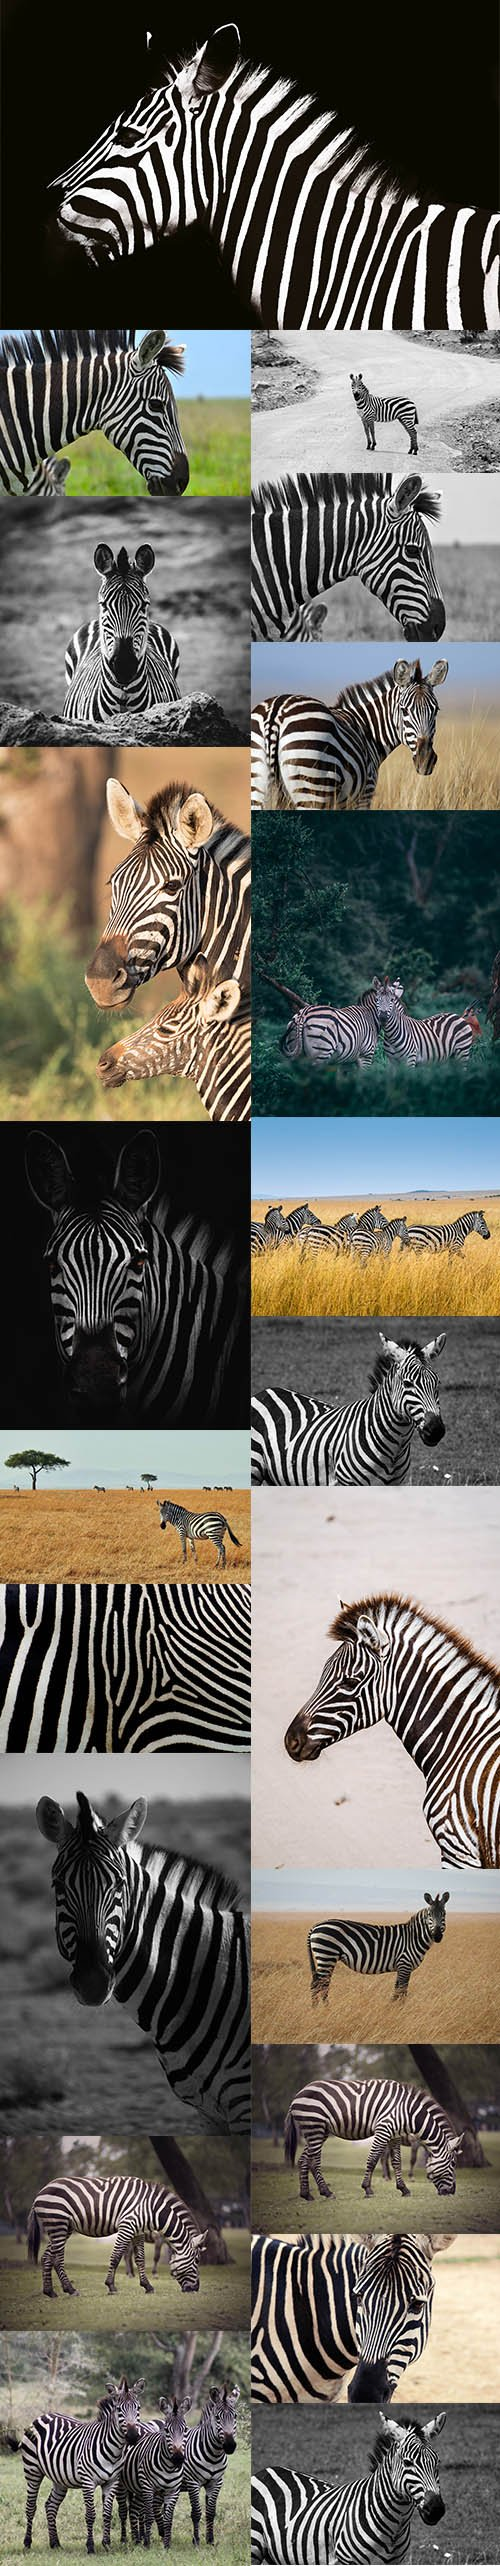 Zebra Bundle - UHQ Stock Photo